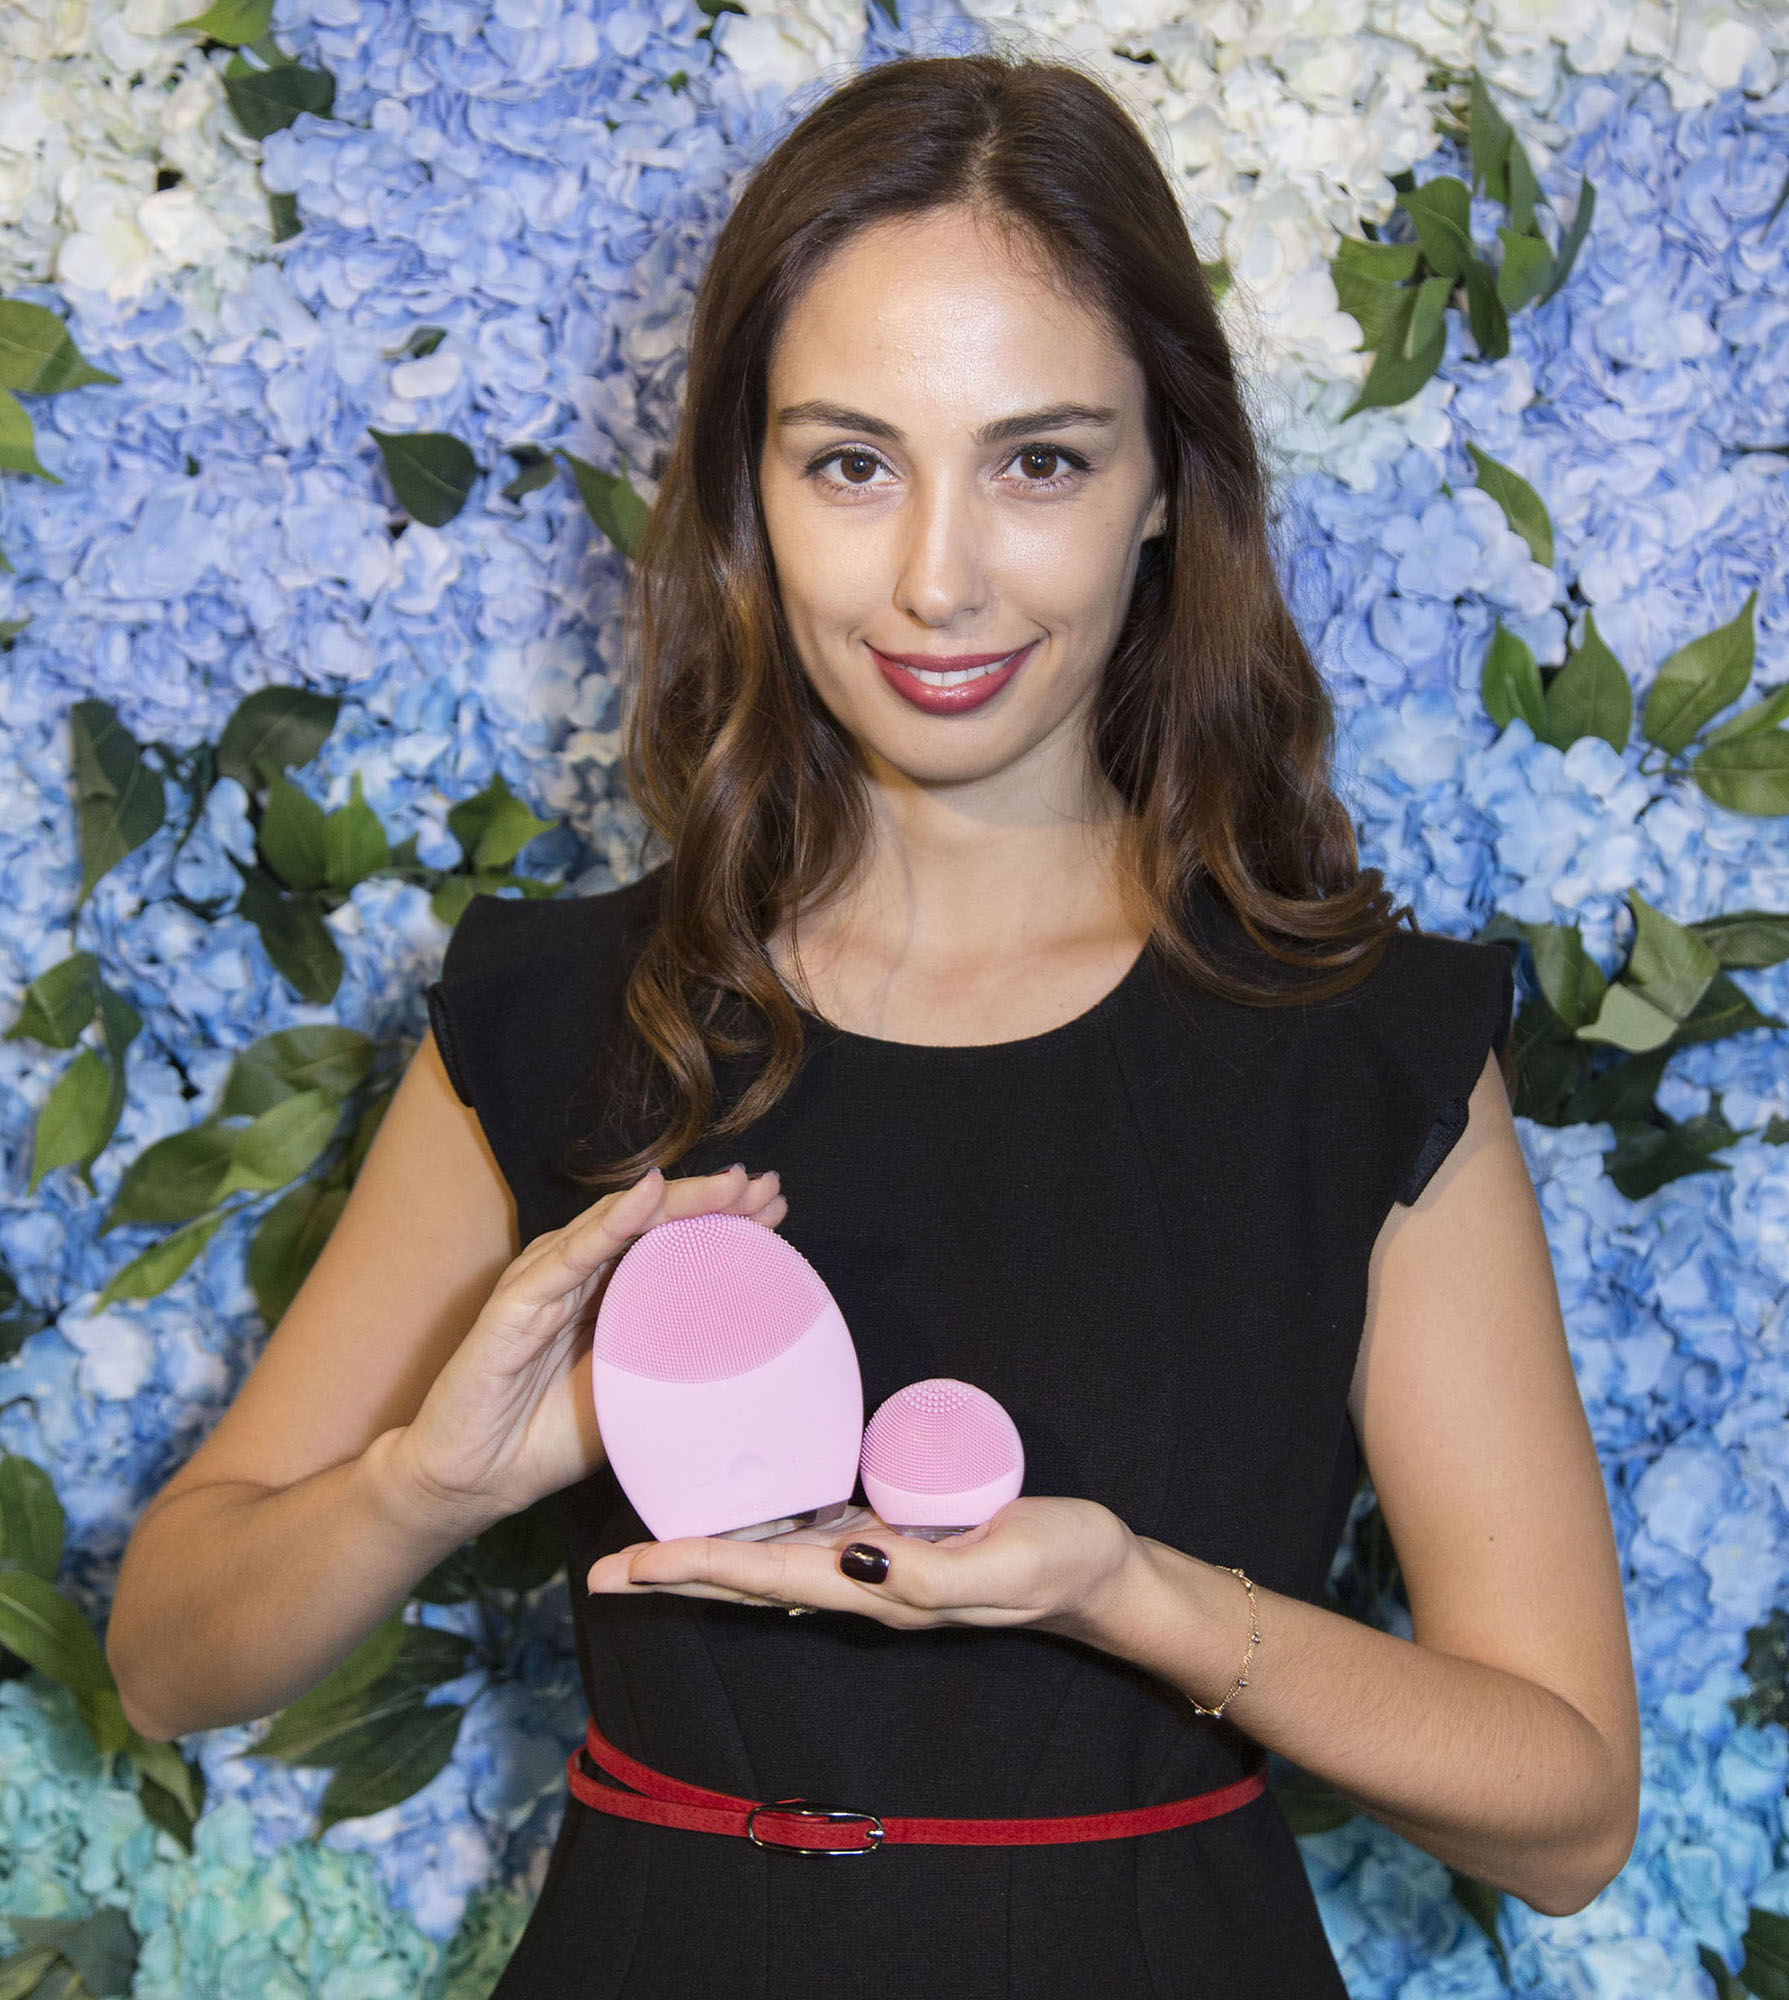 ozlem-polat-asia-marketing-manager-of-foreo-presenting-luna-go-and-luna-2_1